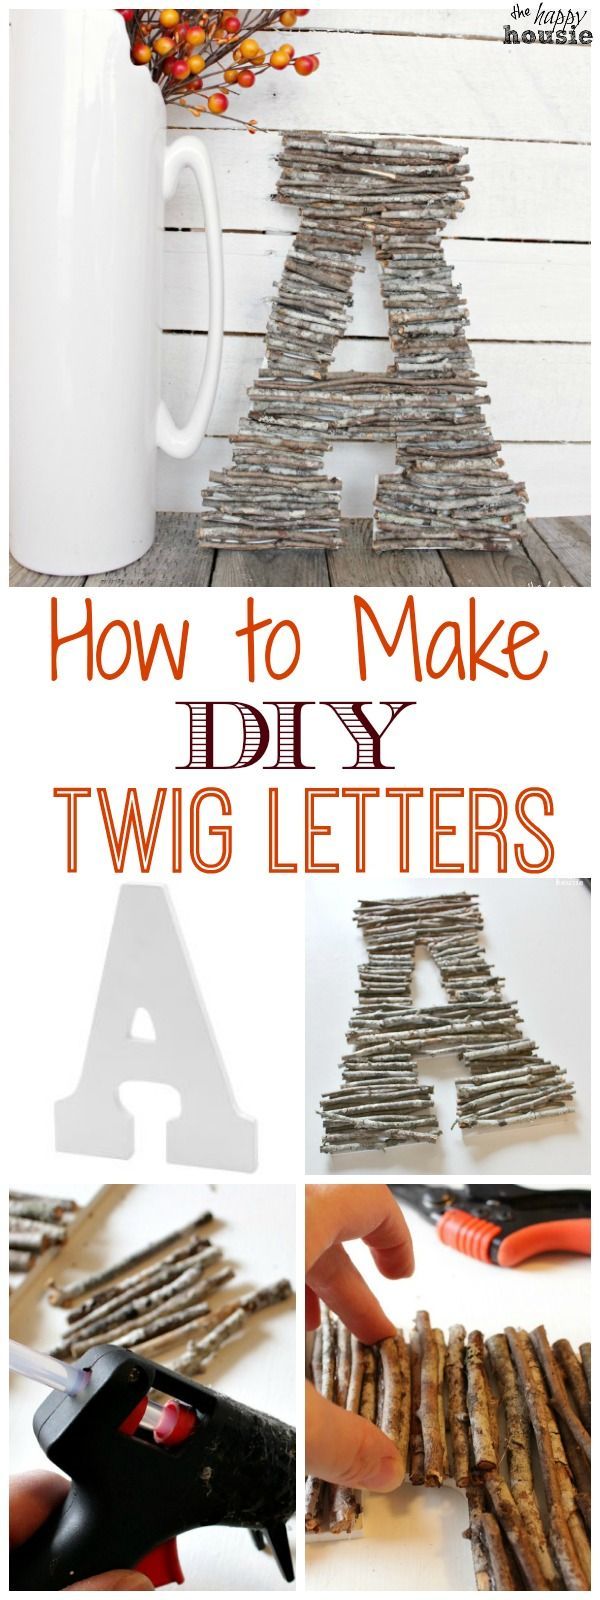 Easy DIY Craft with twigs and branches - learn how to make your own Twig Letters or a Twig Monogram tutorial at The Happy Housie #twigcrafts #naturecrafts #falldecor